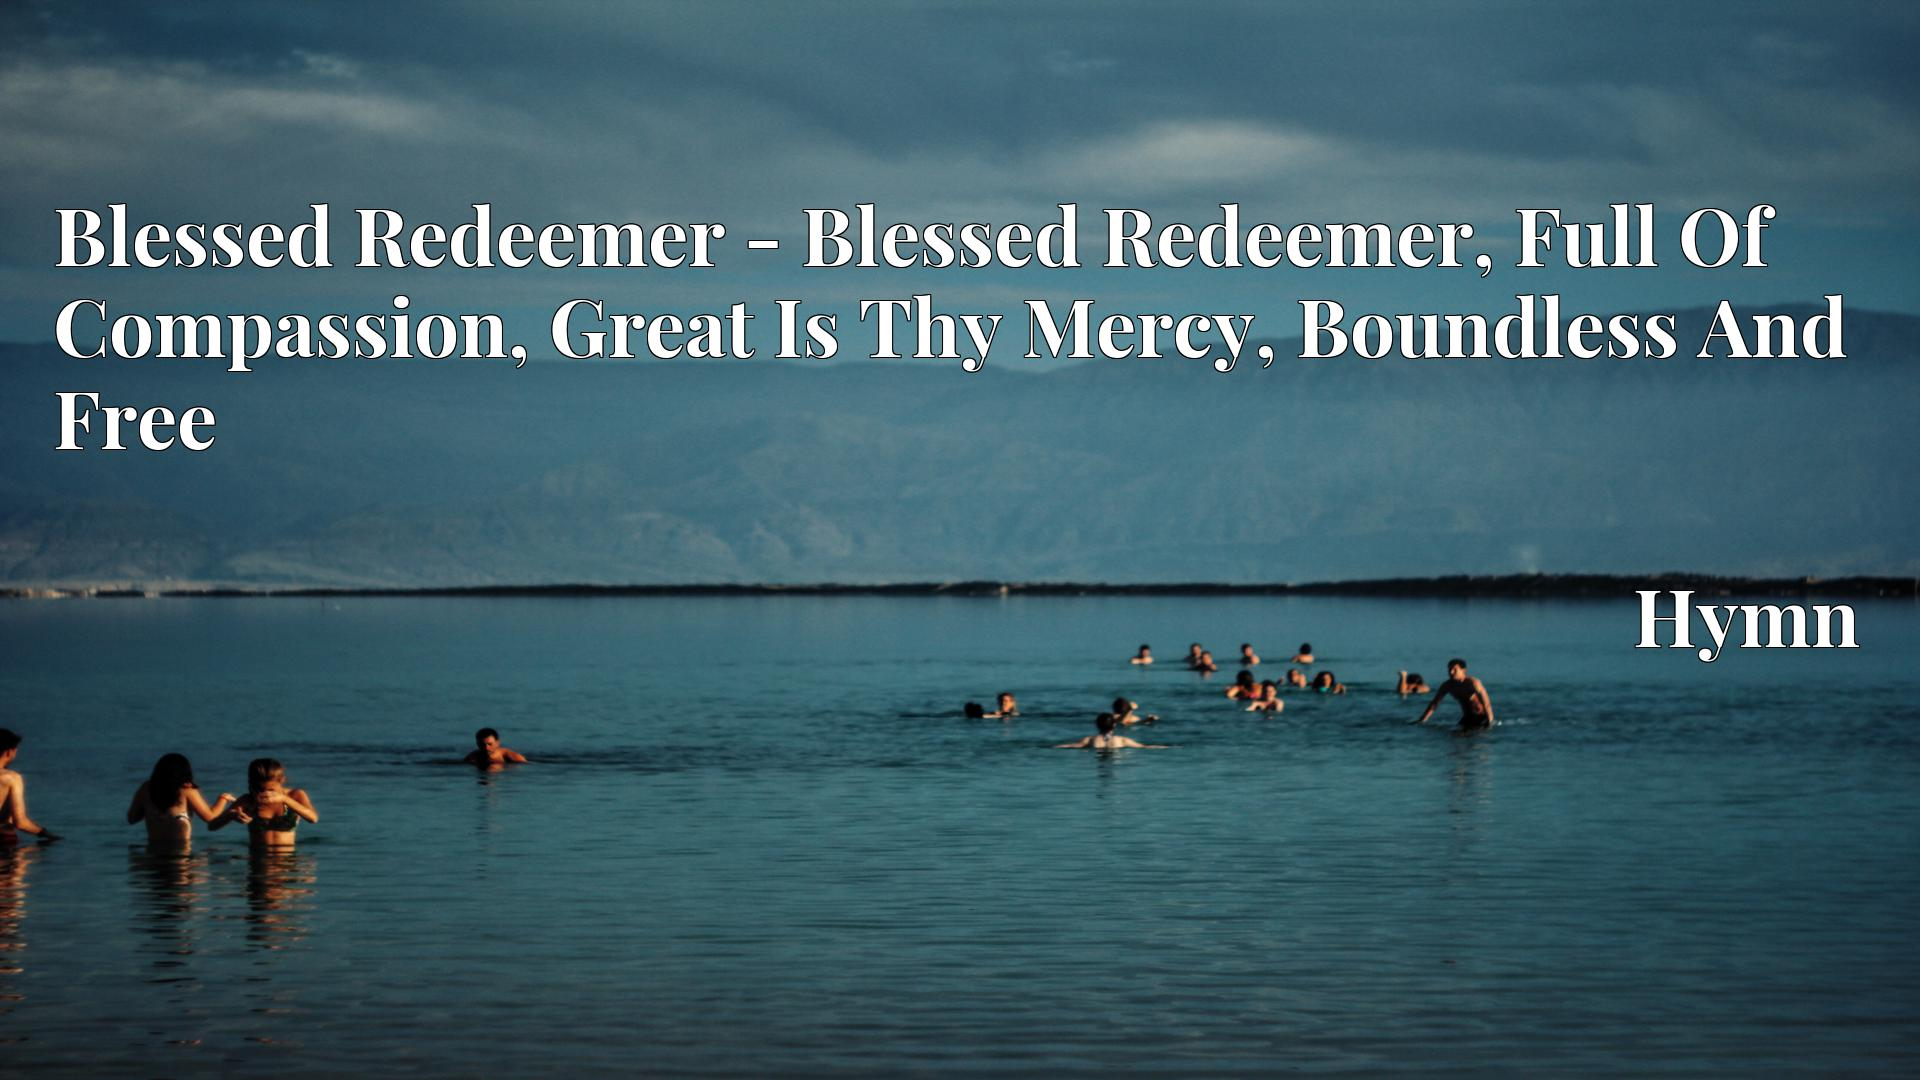 Blessed Redeemer - Blessed Redeemer, Full Of Compassion, Great Is Thy Mercy, Boundless And Free - Hymn